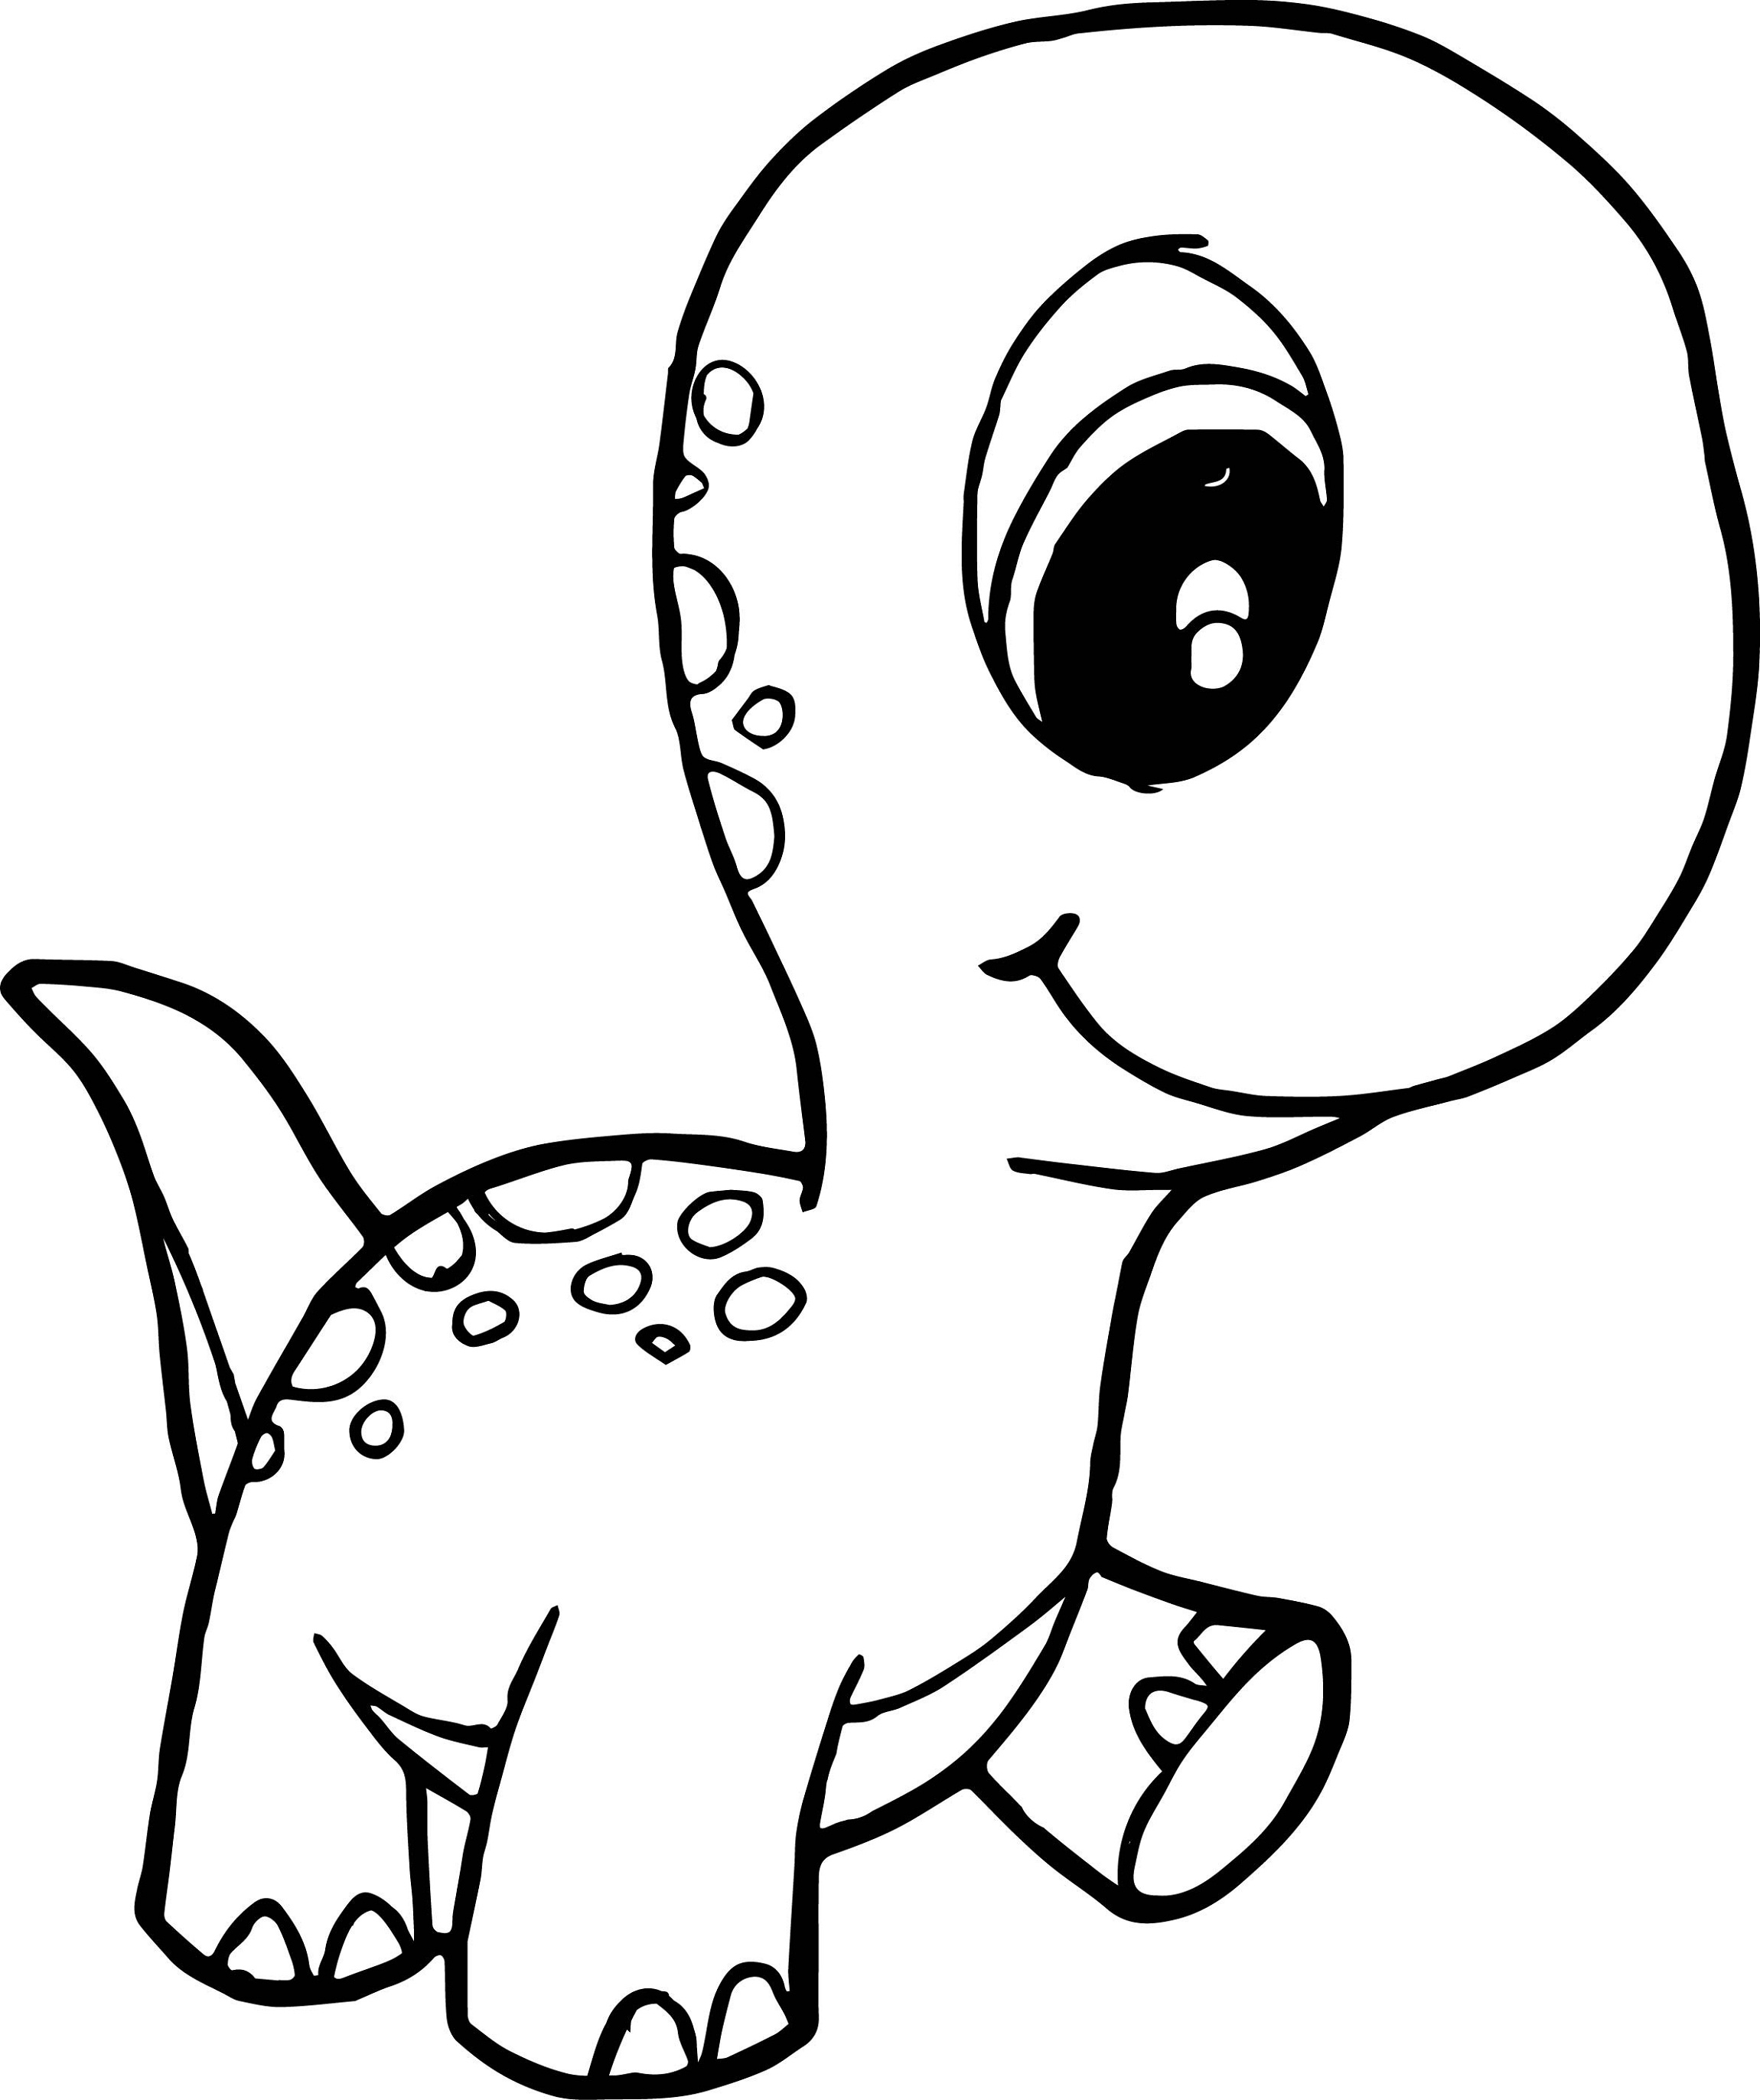 printable pictures of dinosaurs cute dinosaur coloring pages for kids coloring home printable pictures dinosaurs of